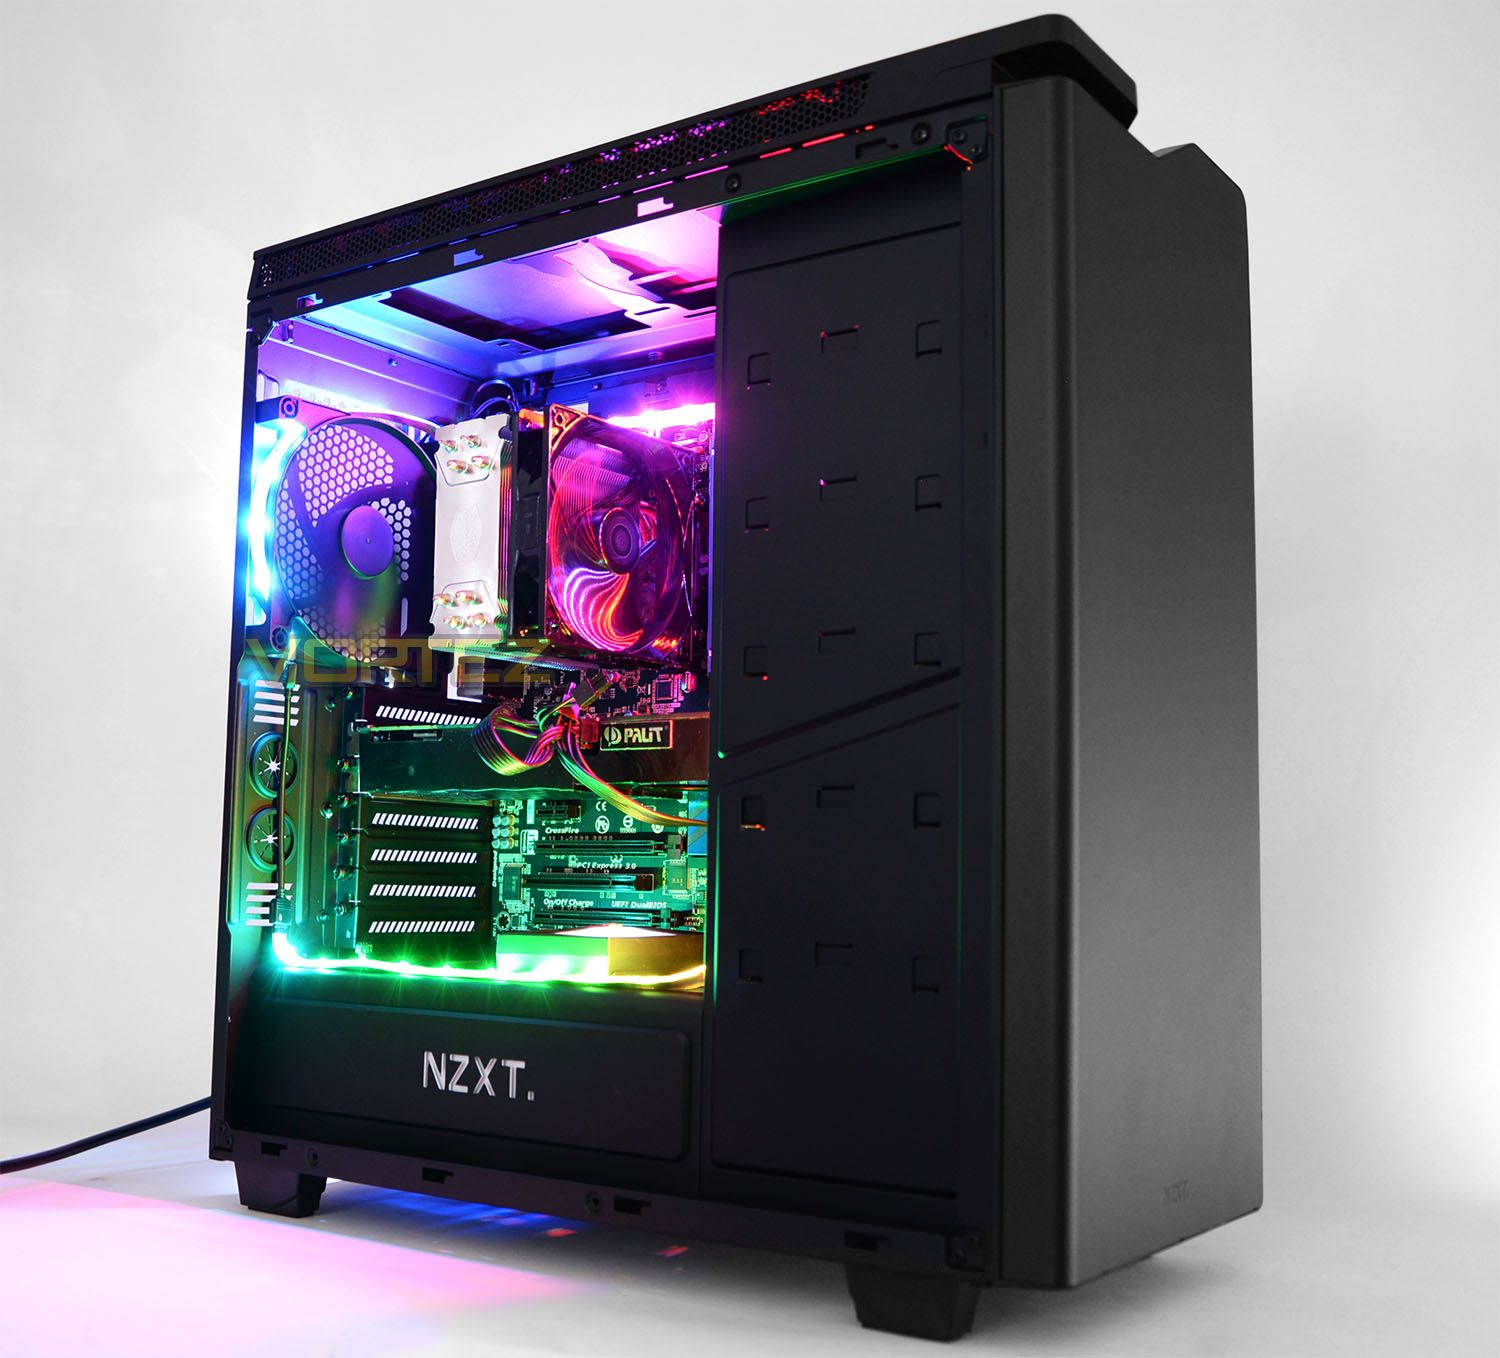 In This Post, We Will Cover Some Of The Best Pc Cases You